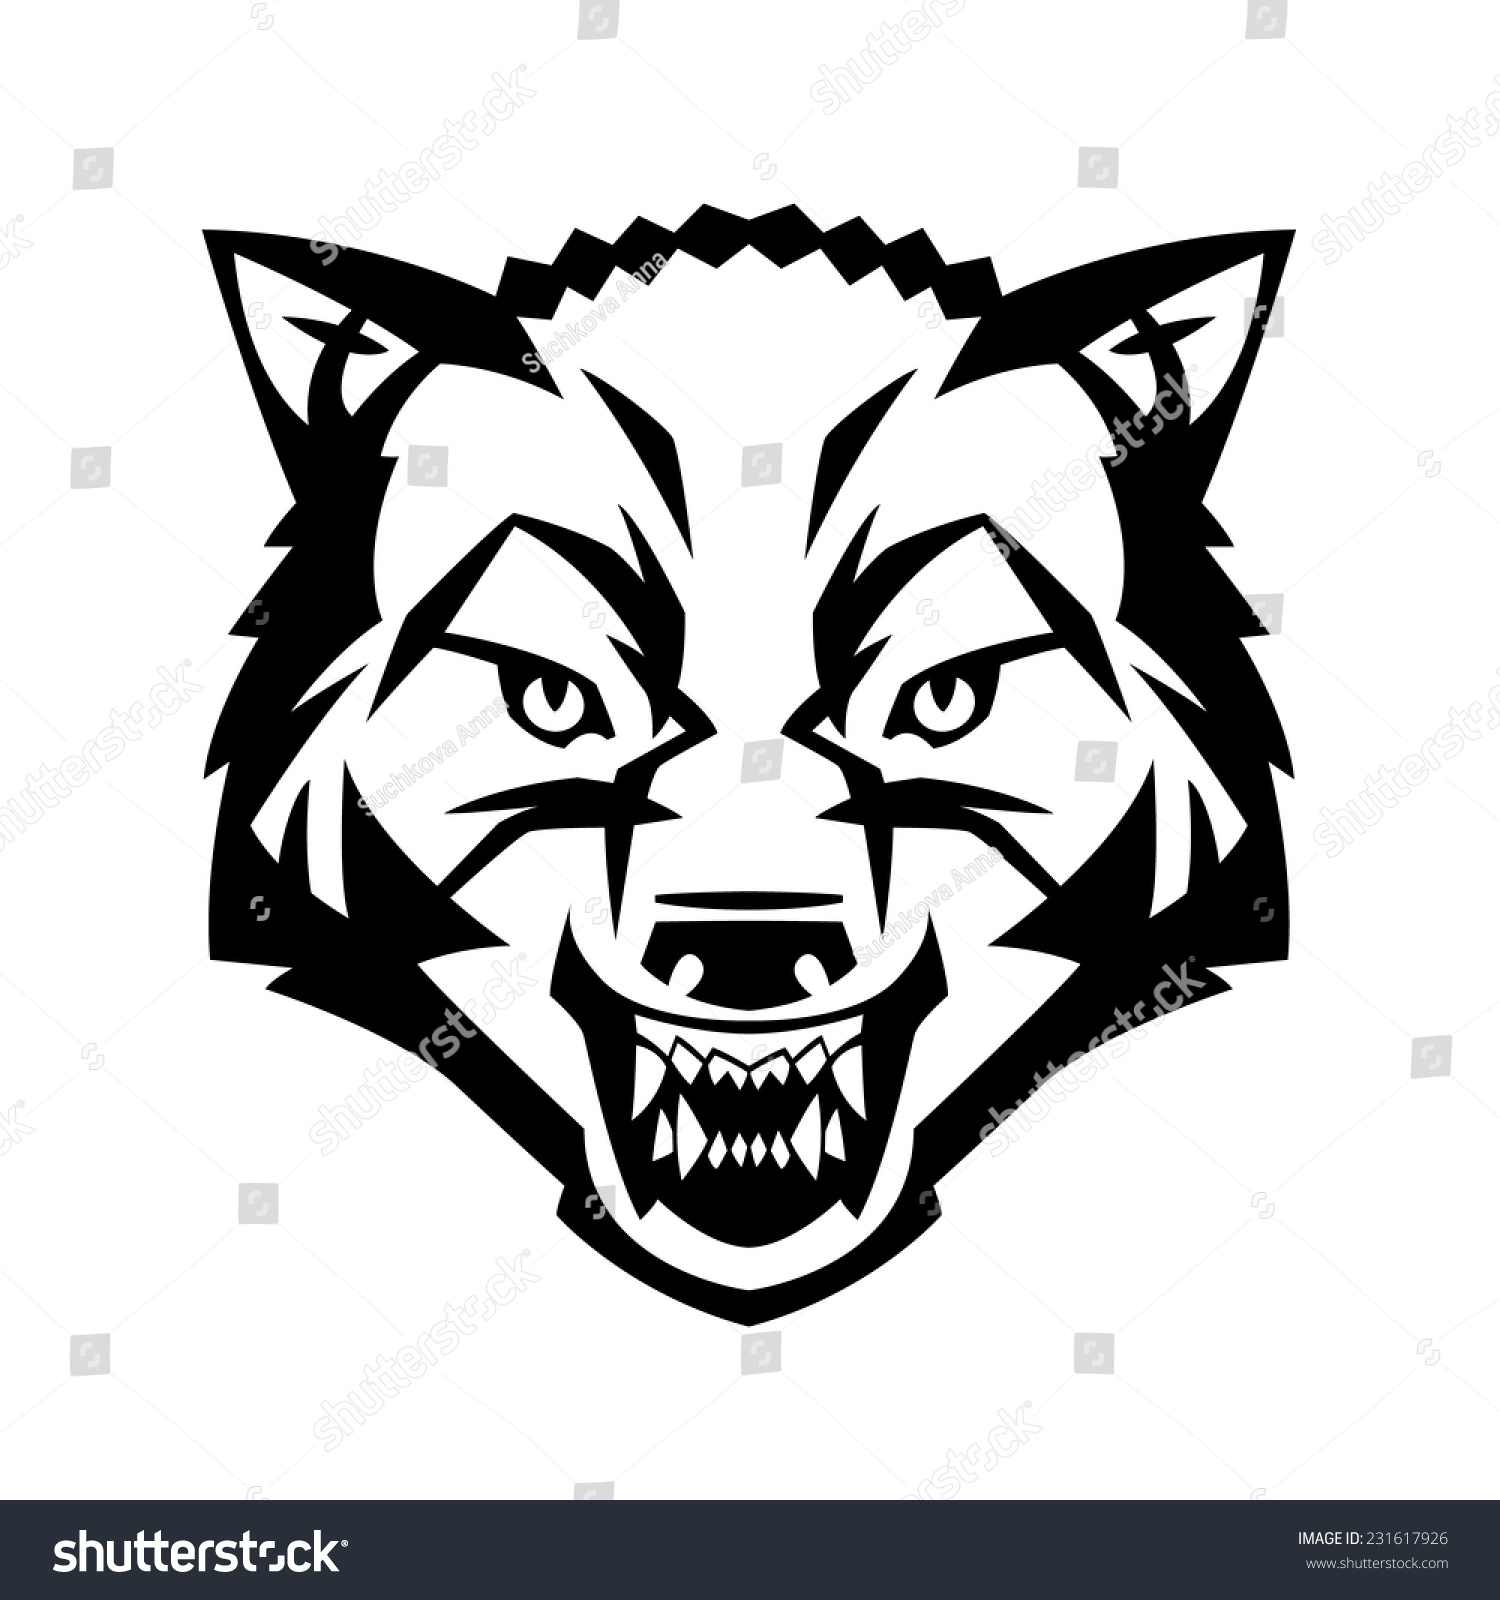 wolfs head showing teeth harsh beast stock vector  wolf s head showing teeth harsh beast hunter forest vector can be used as a tattoo or